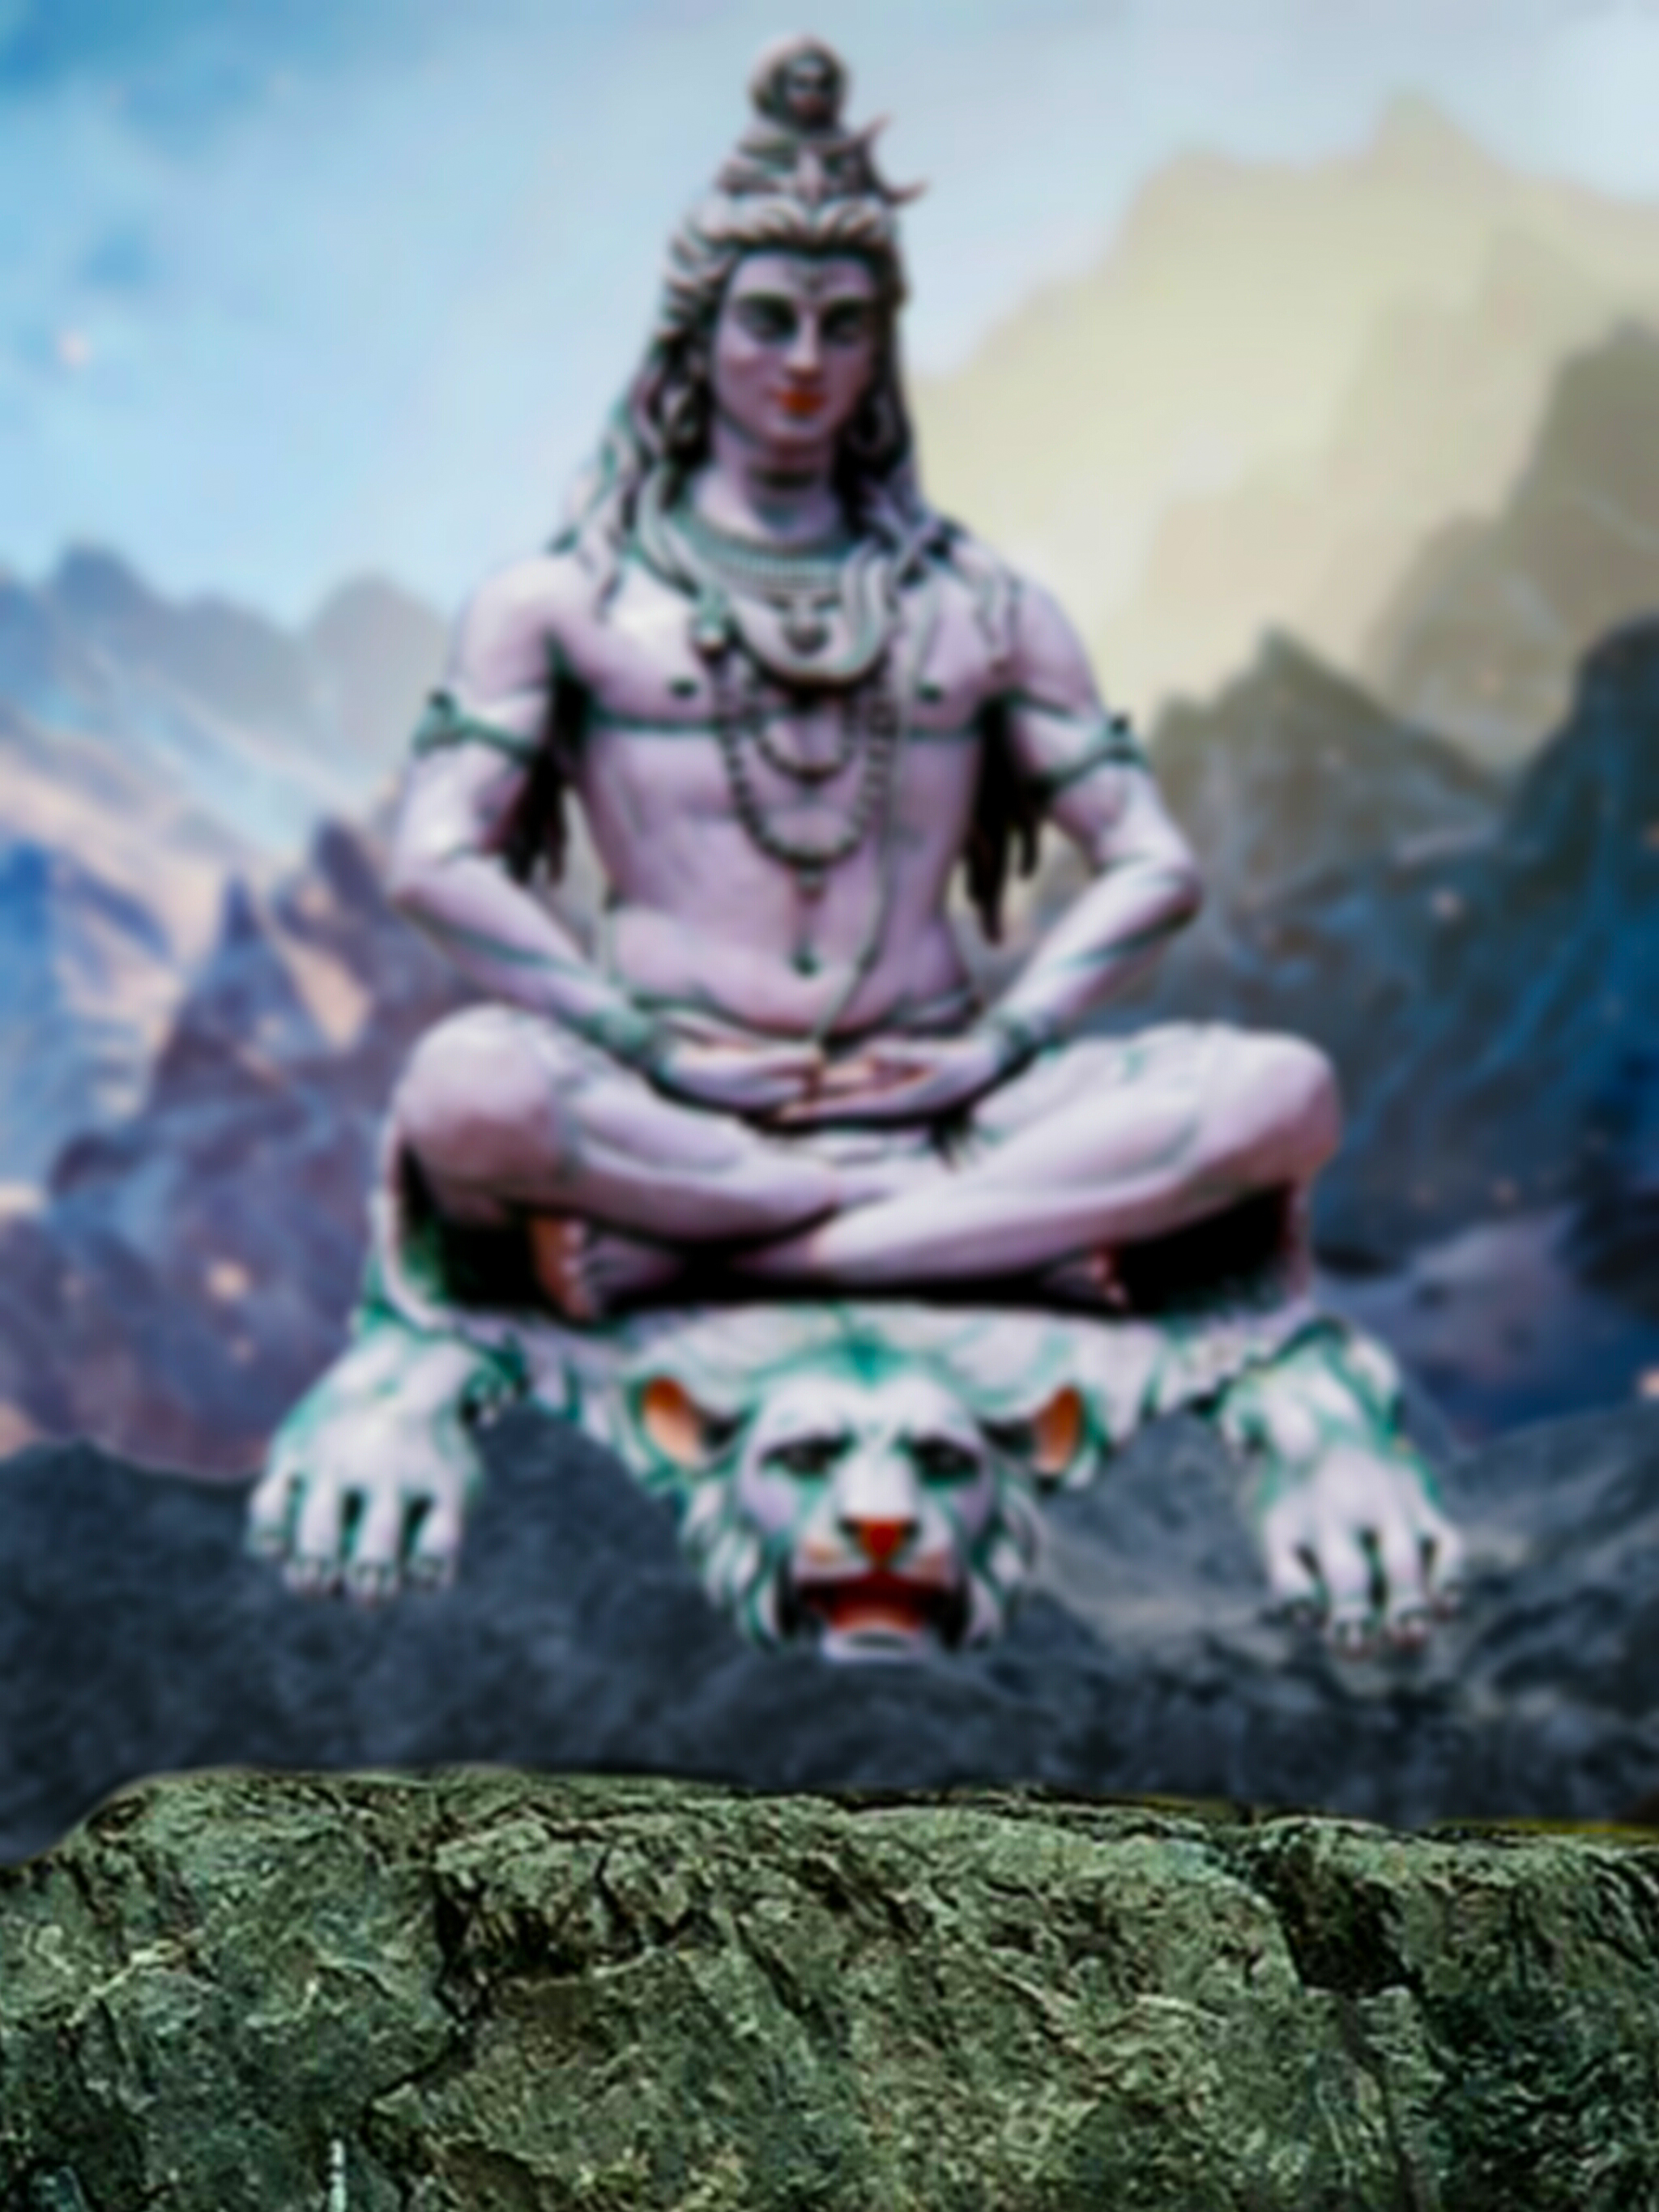 maha shivratri editing backgrounds 9